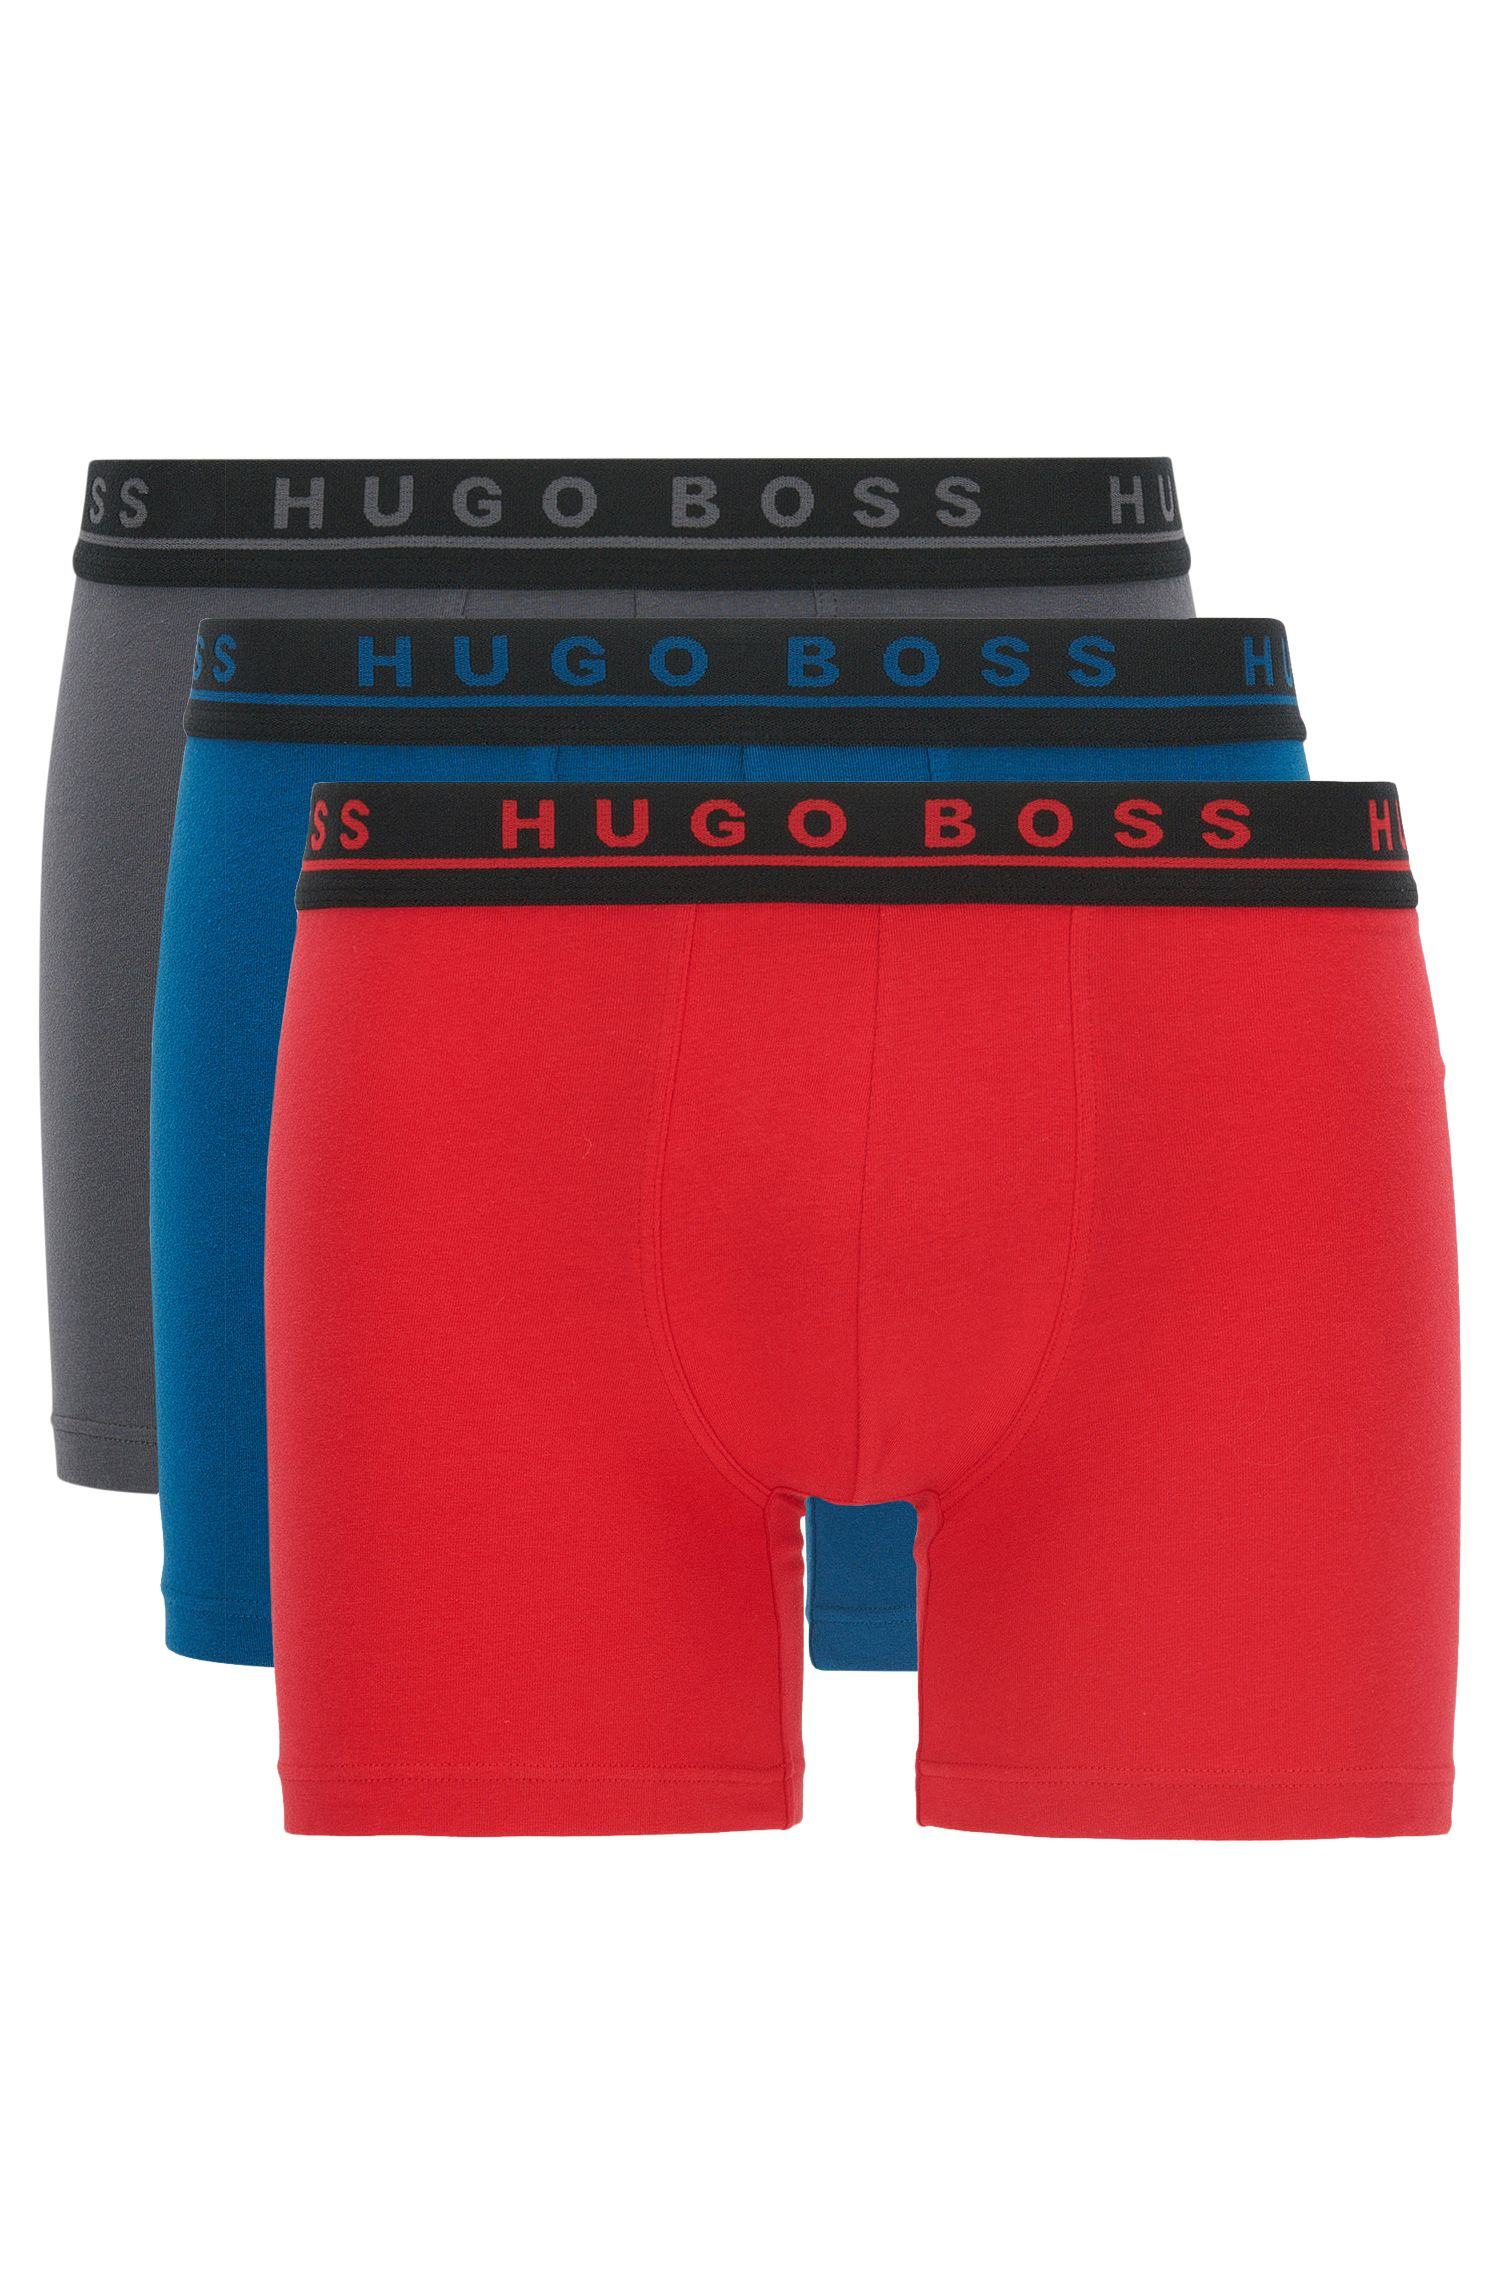 Three-pack of stretch cotton boxer briefs